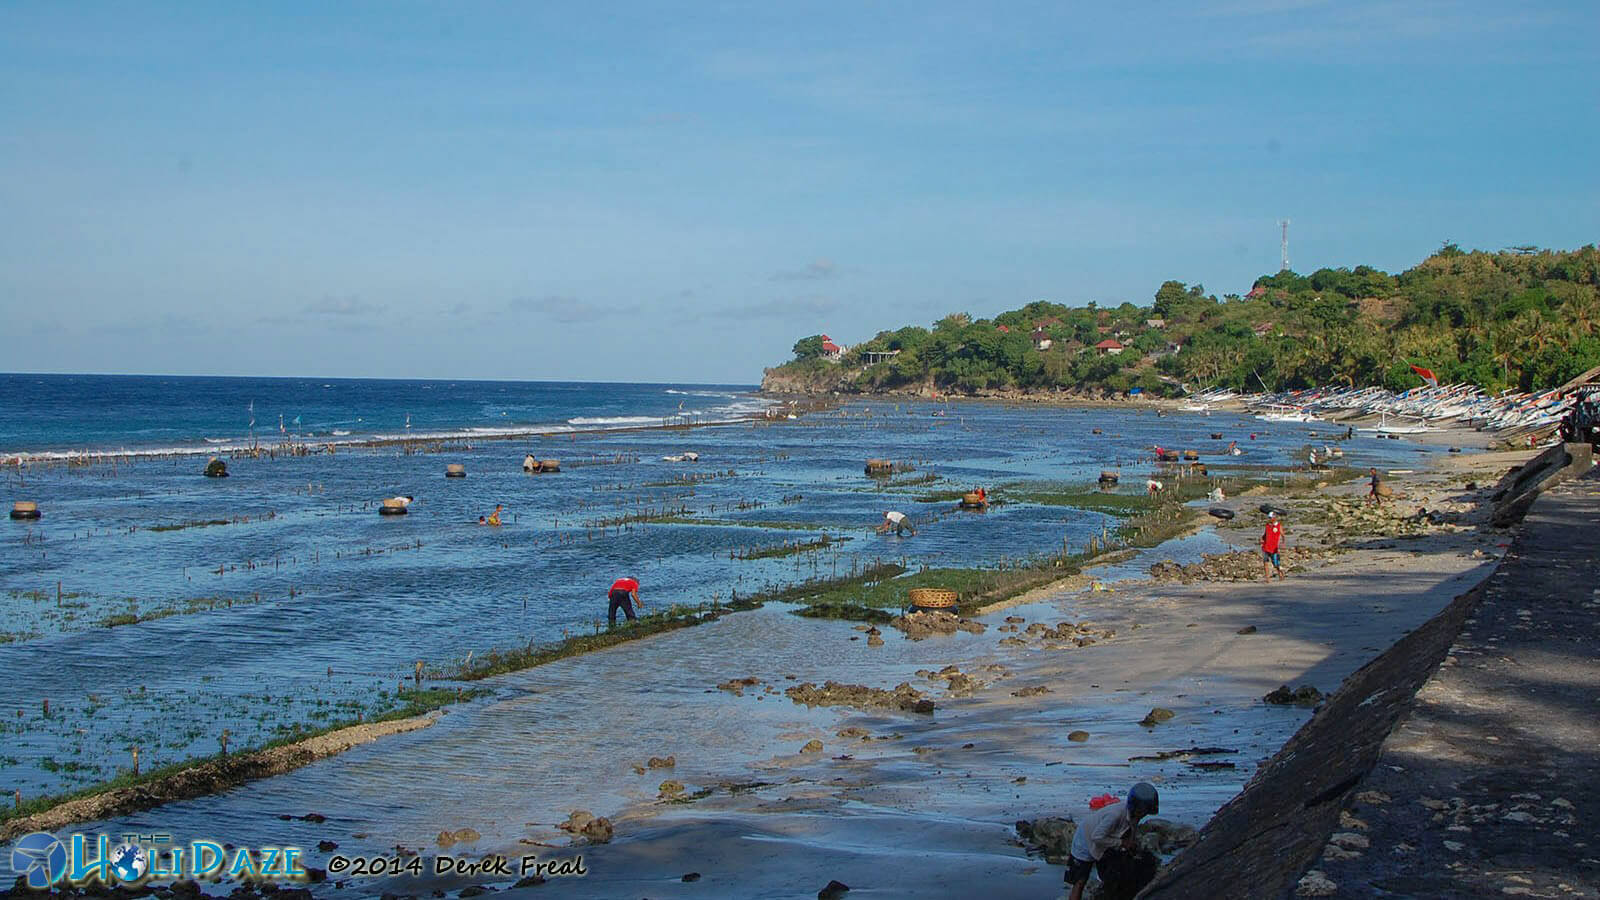 Seaweed farming on the north shore of Nusa Penida island, Bali's hidden paradise